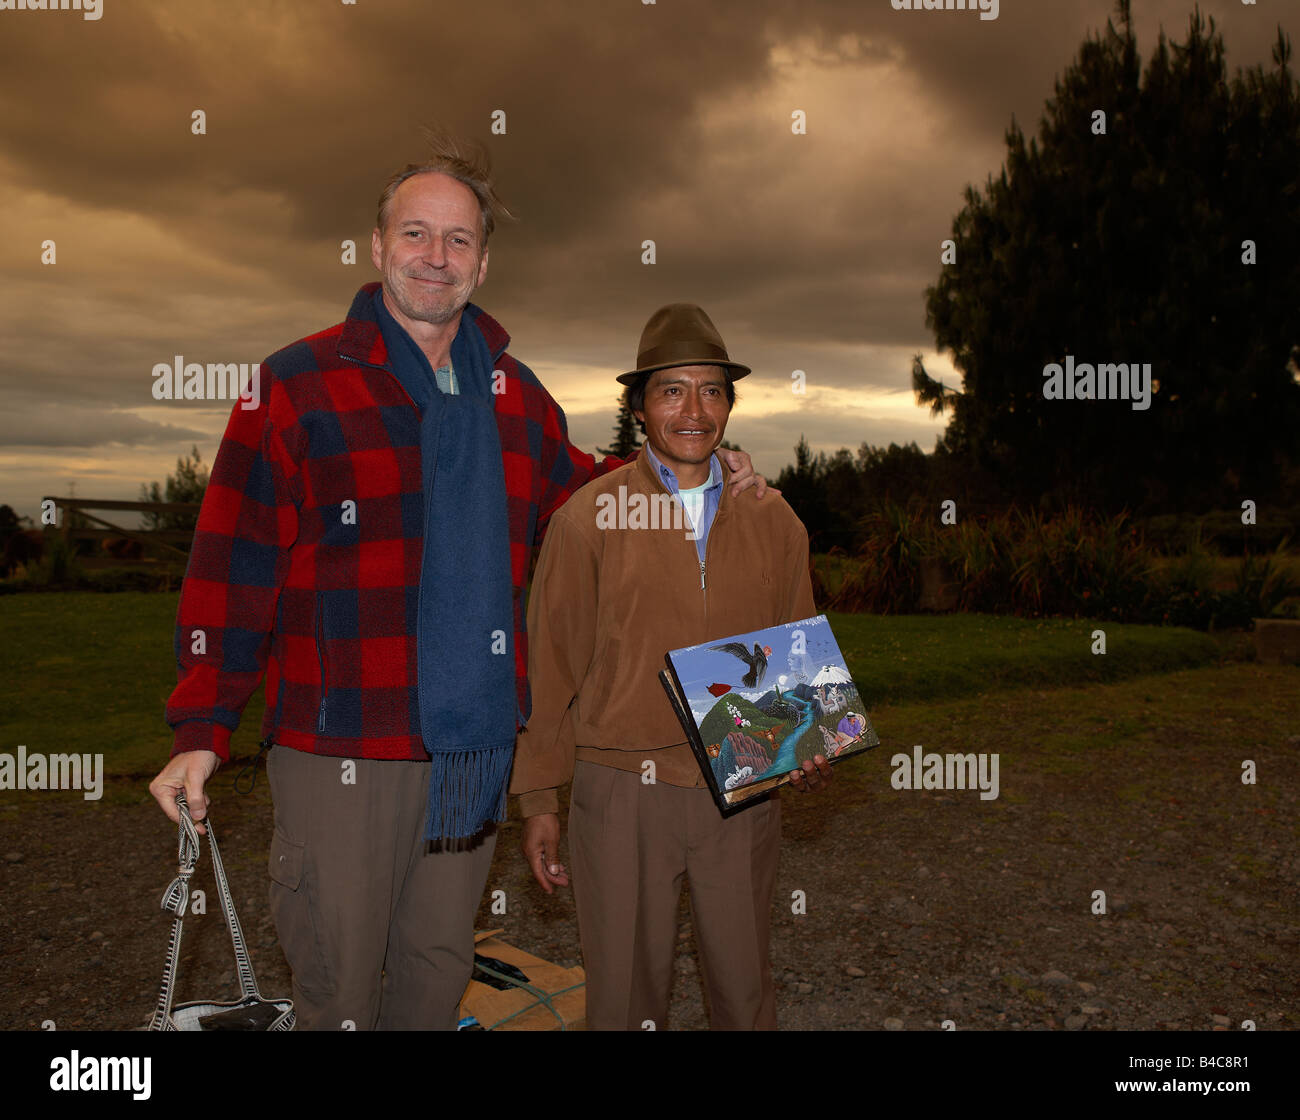 Tourist with local artist, Andes Mountains, Ecuador - Stock Image